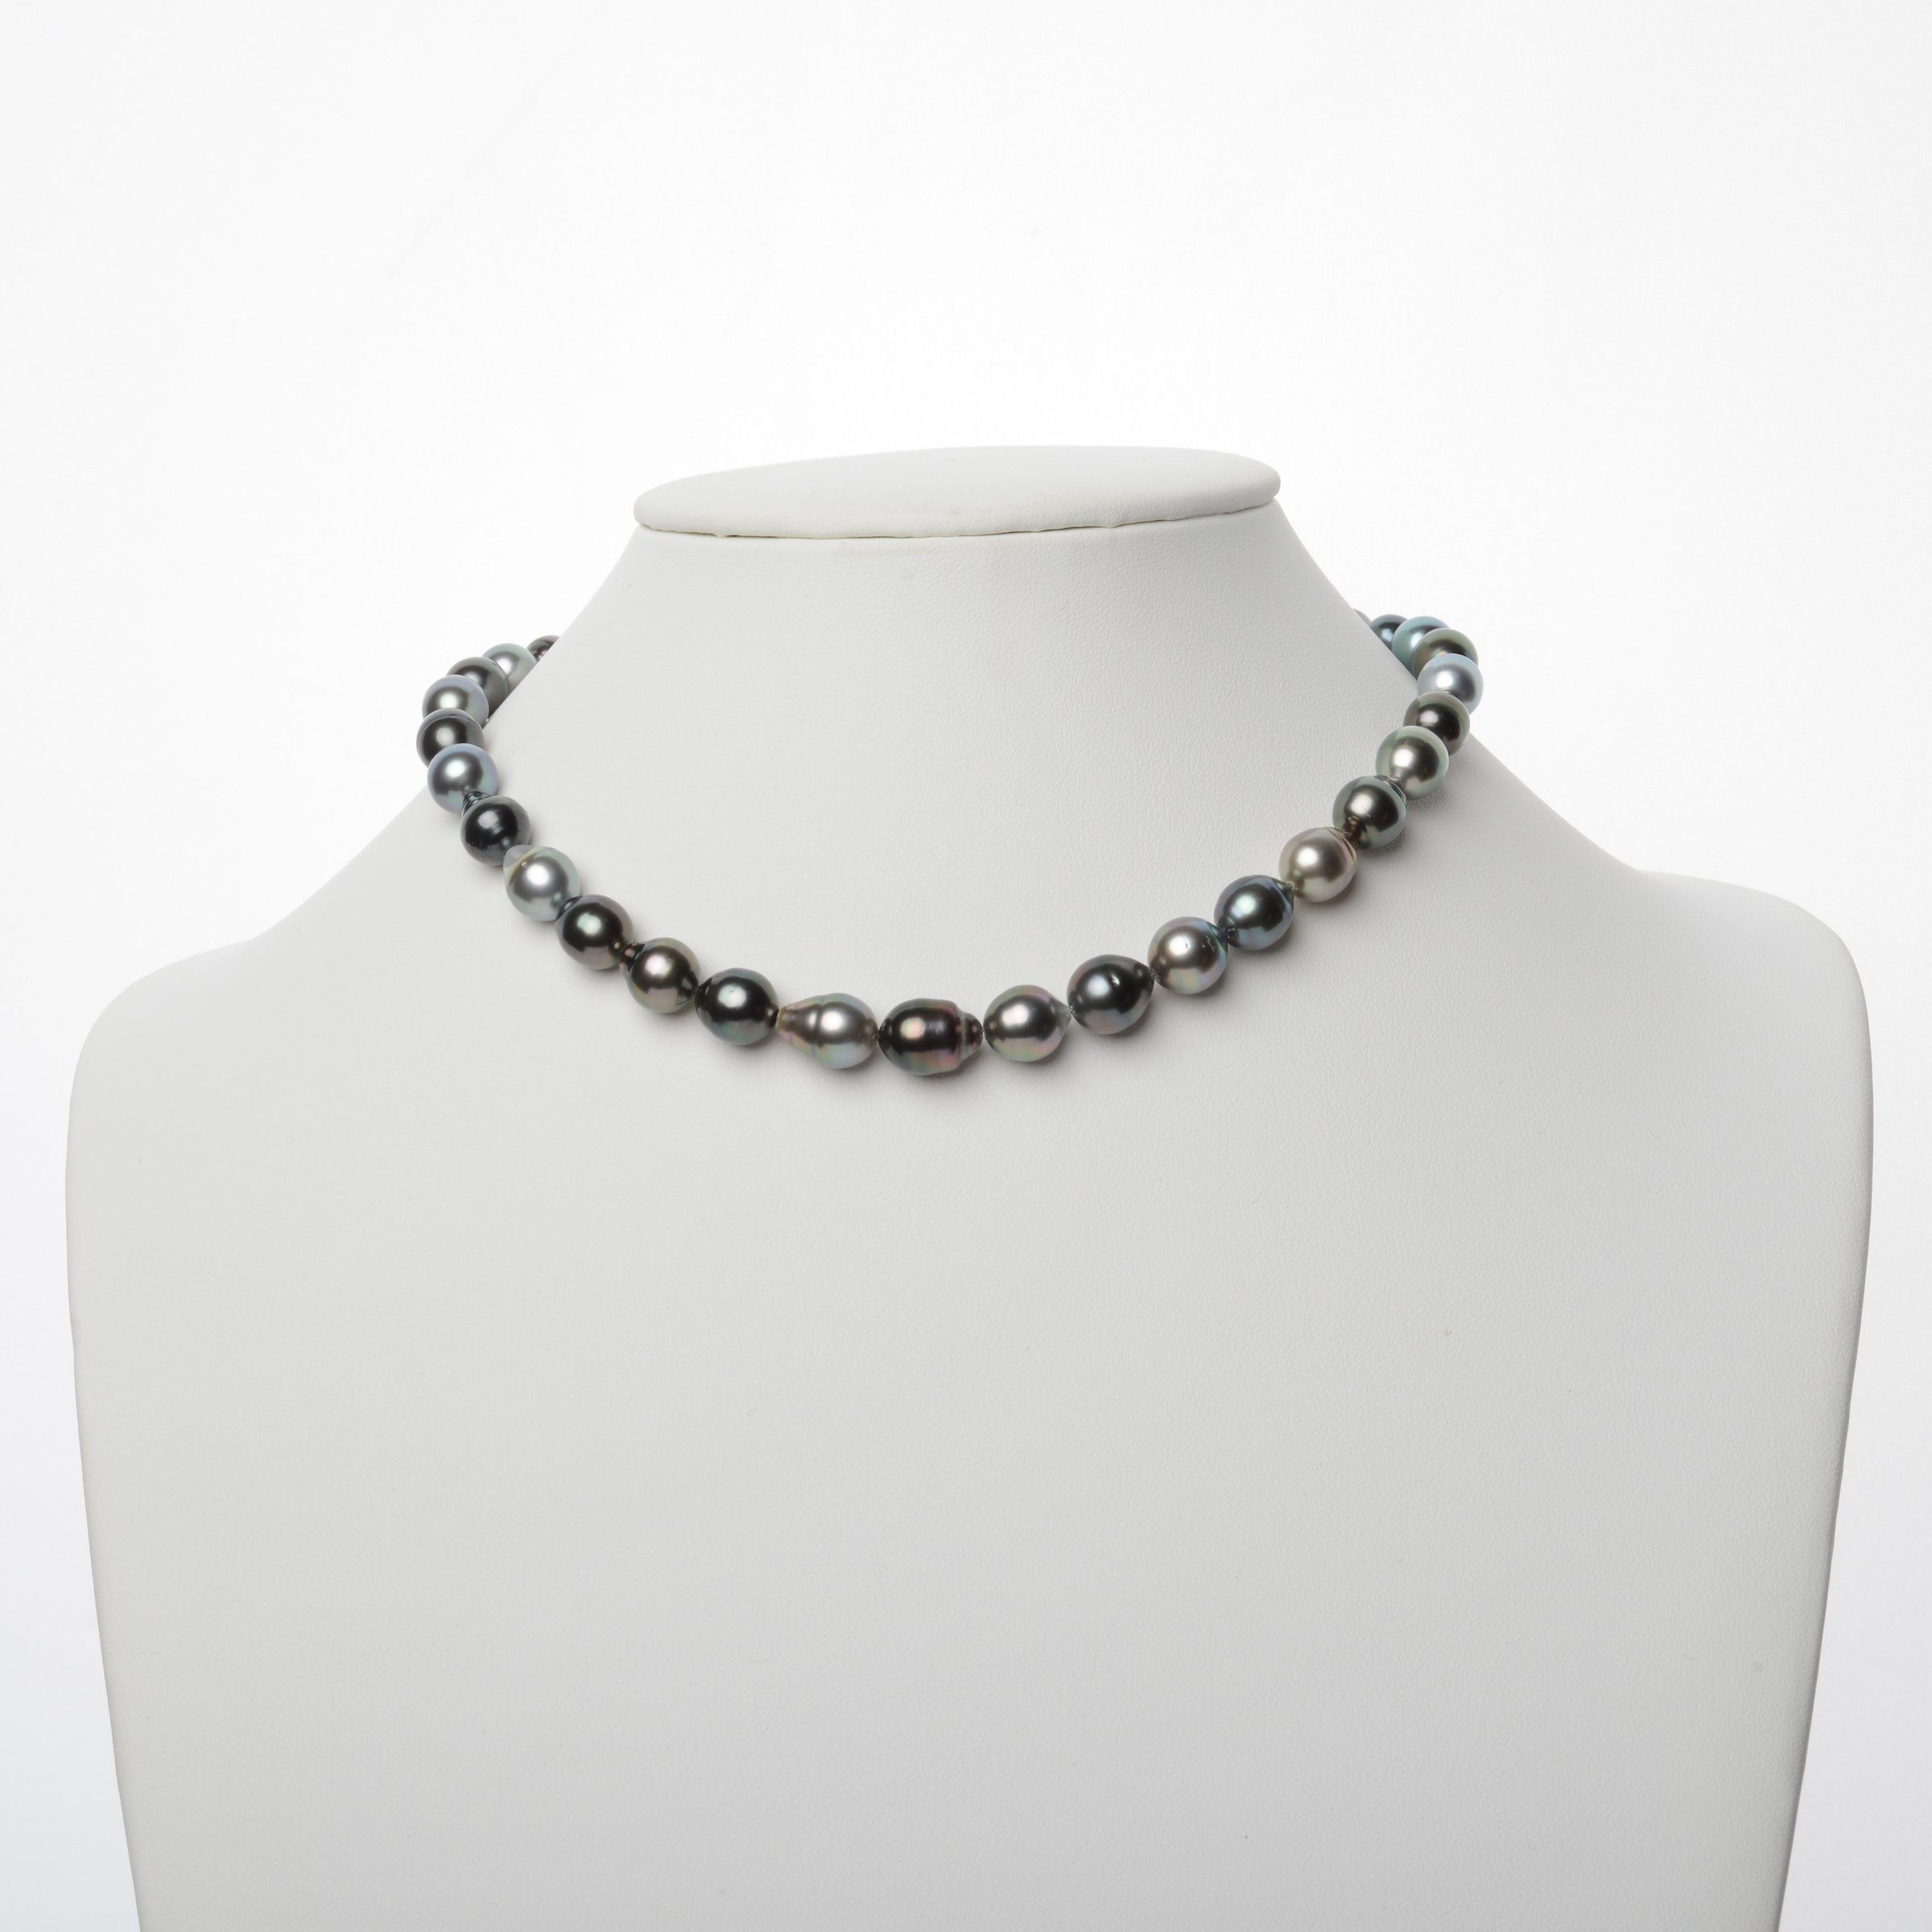 8.0-10.1 mm AAA Tahitian Baroque Pearl Necklace